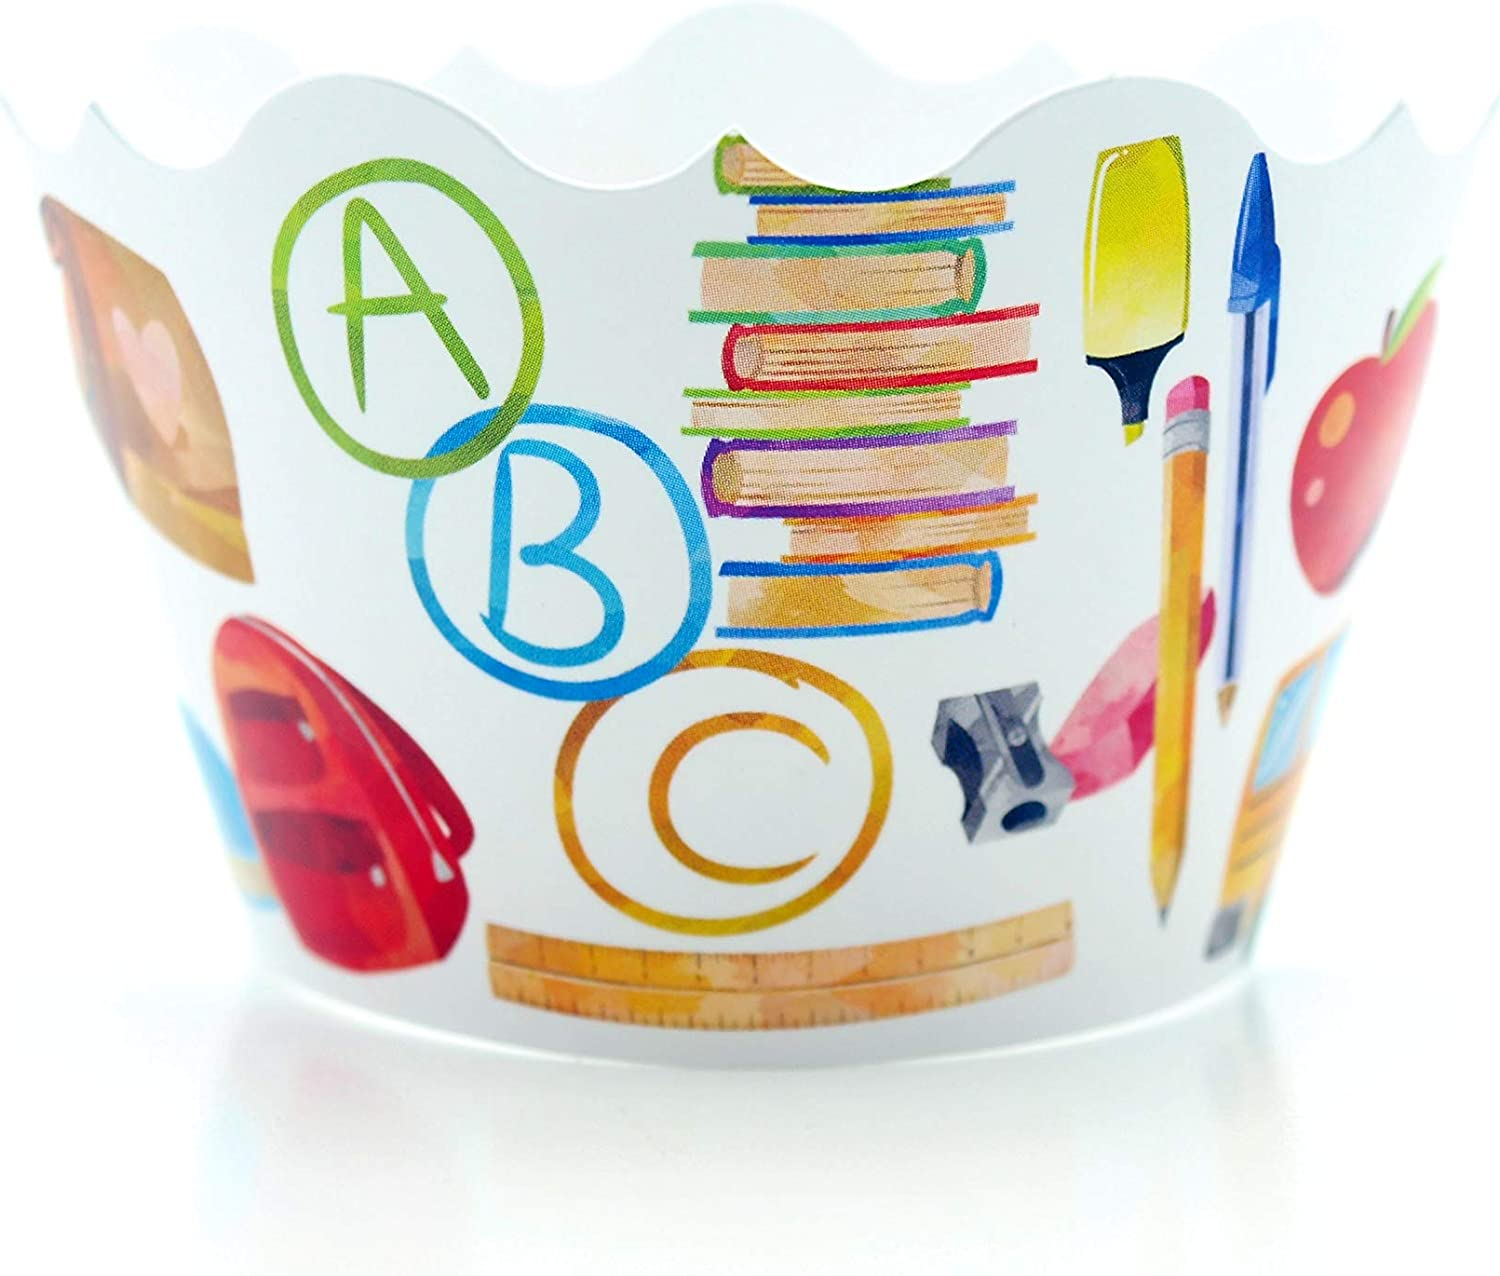 Back To School Party Supplies Cupcake Wrappers (12 Pack) - ABC Teacher Appreciation Gift Ideas, Class Birthday Party Snack Food, School Celebration Party Favors